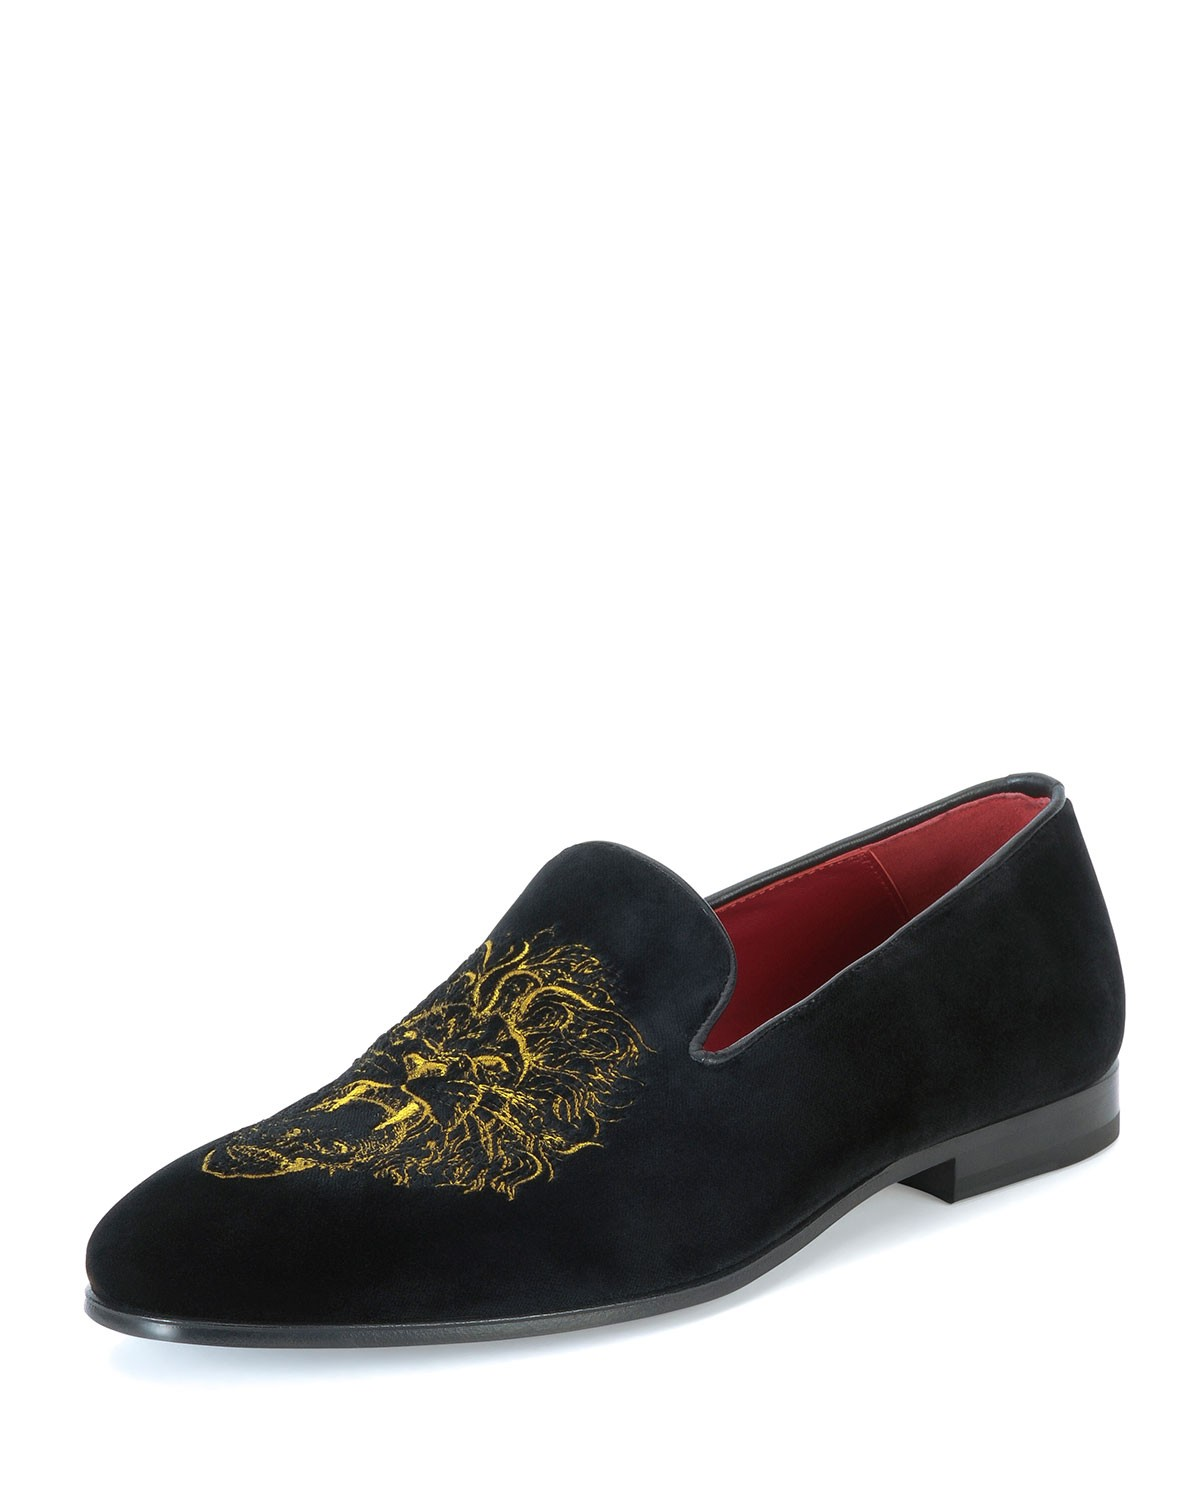 Slip-On Loafer with Embroidered Lion, Black/Mustard - Alexander McQueen